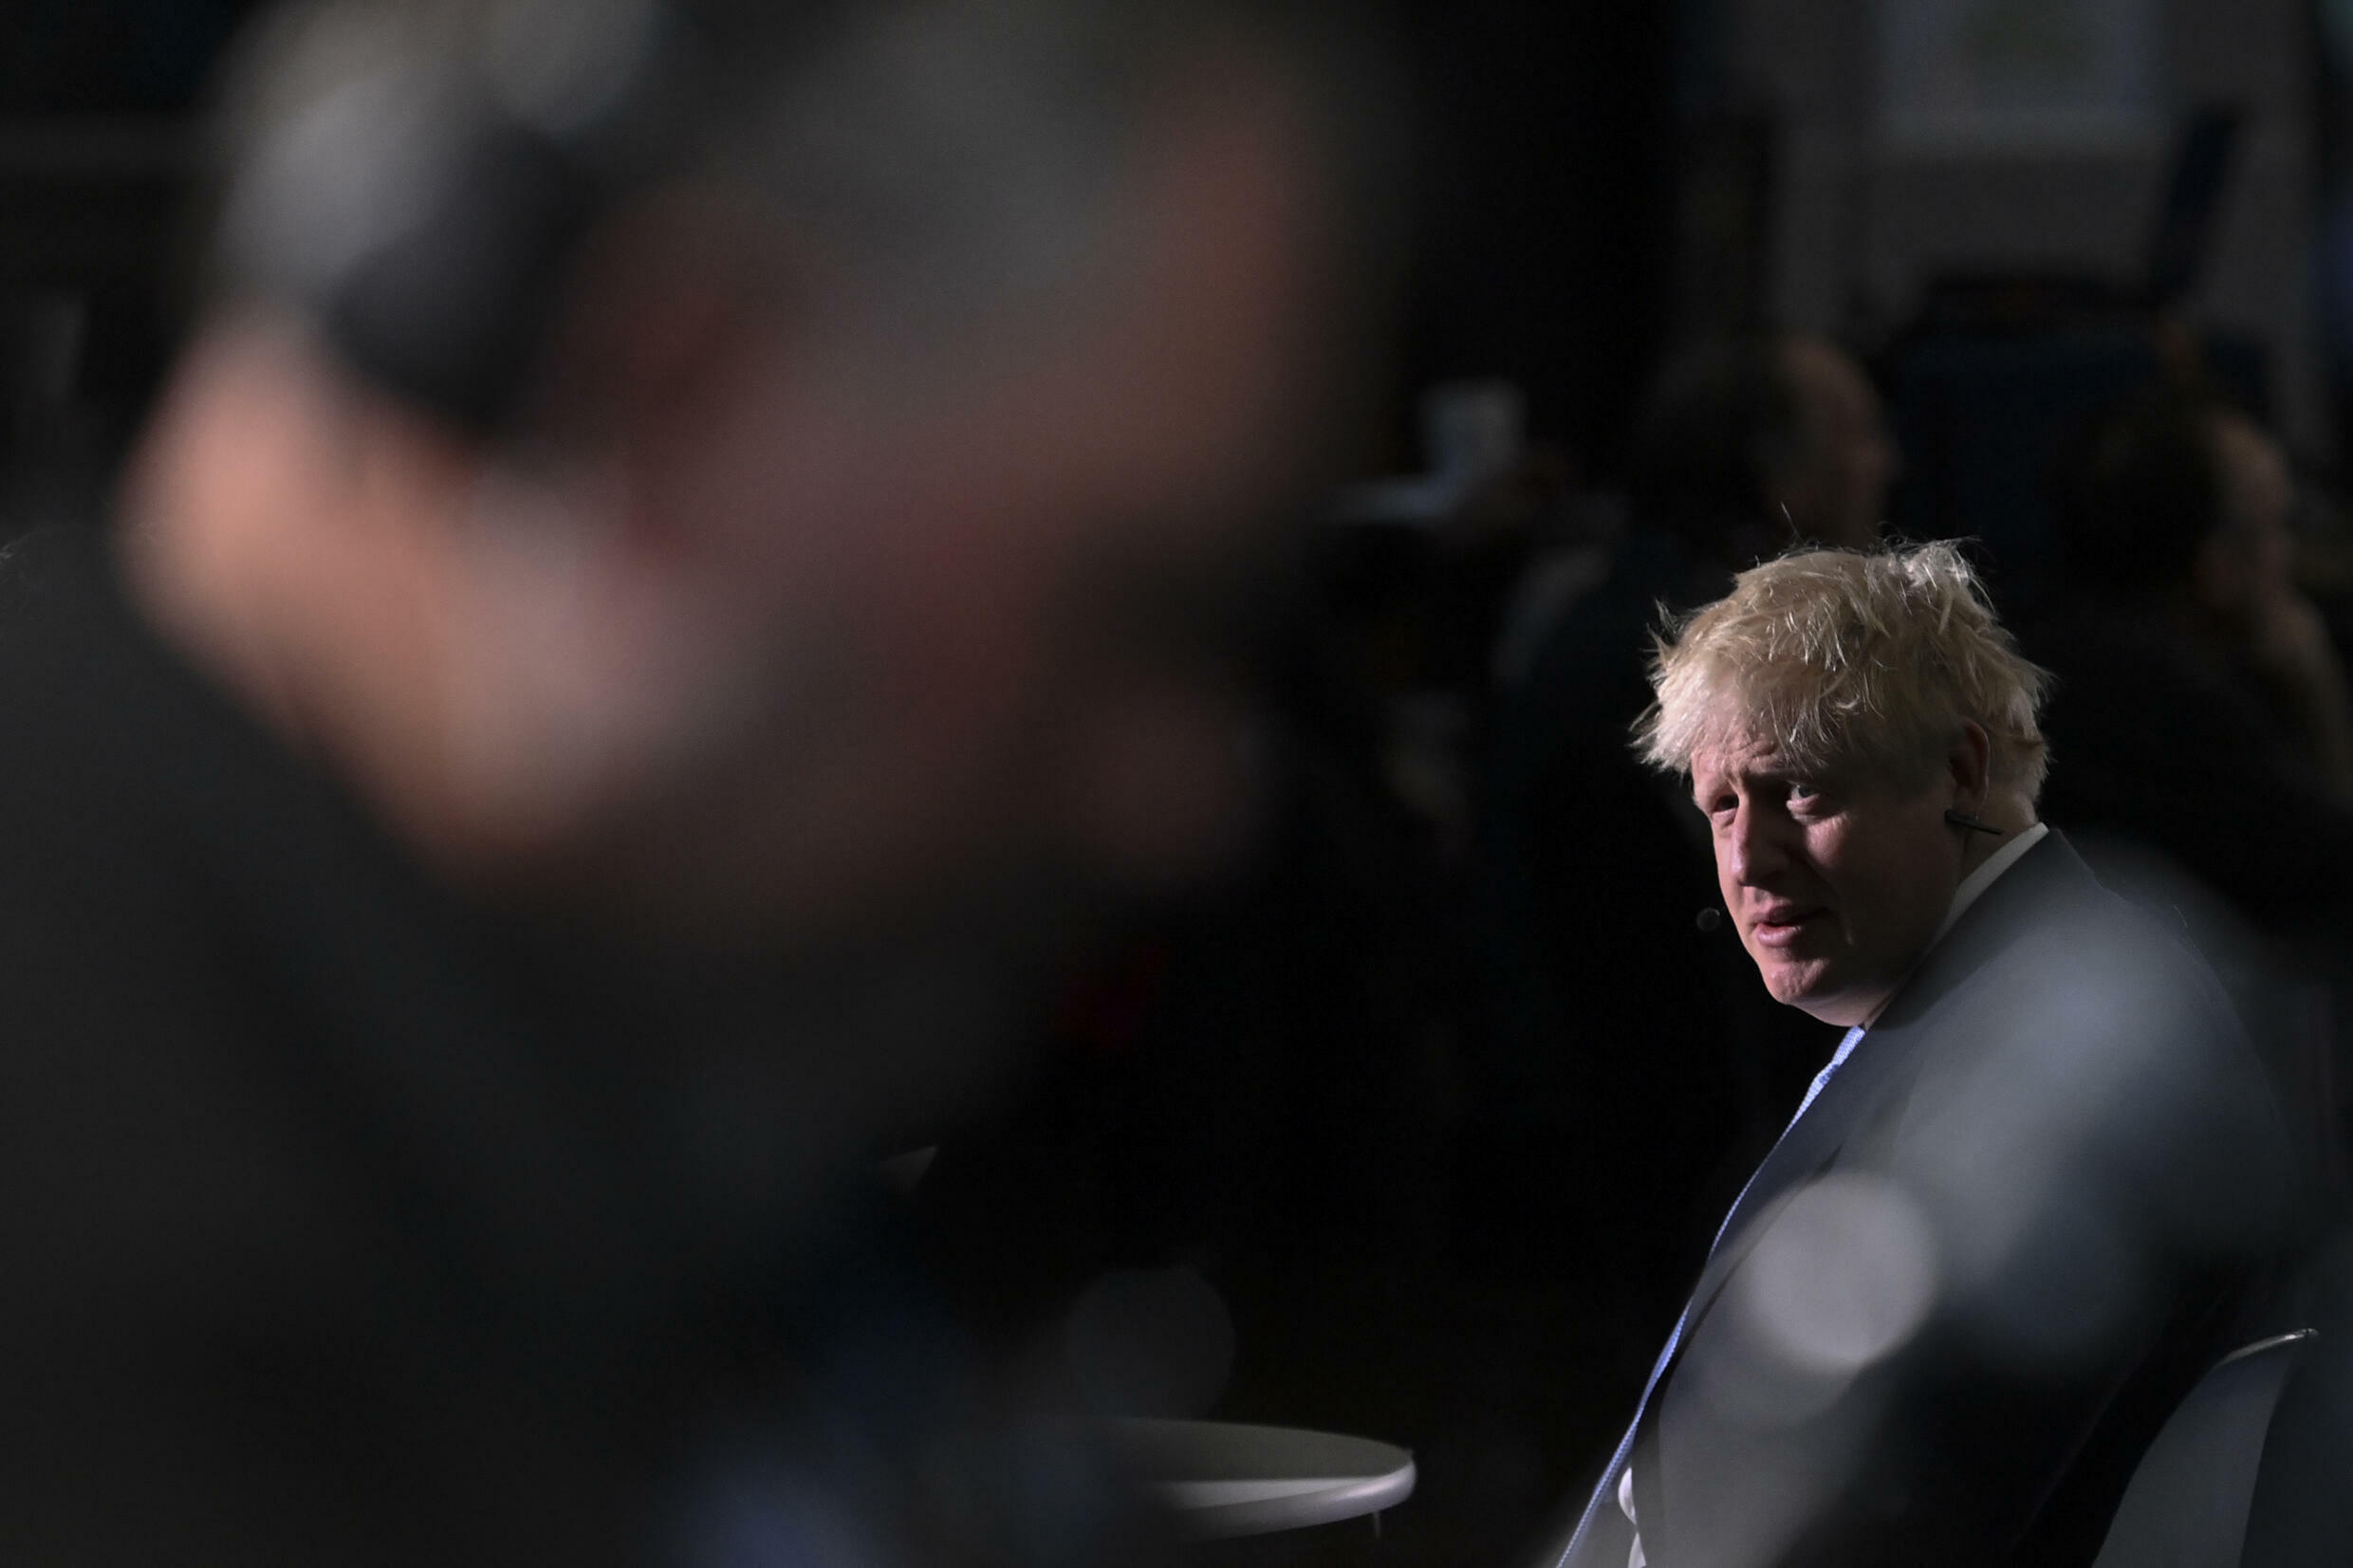 Johnson is expected to explain Britain's current problems as unavoidable to reset the economy post-Brexit